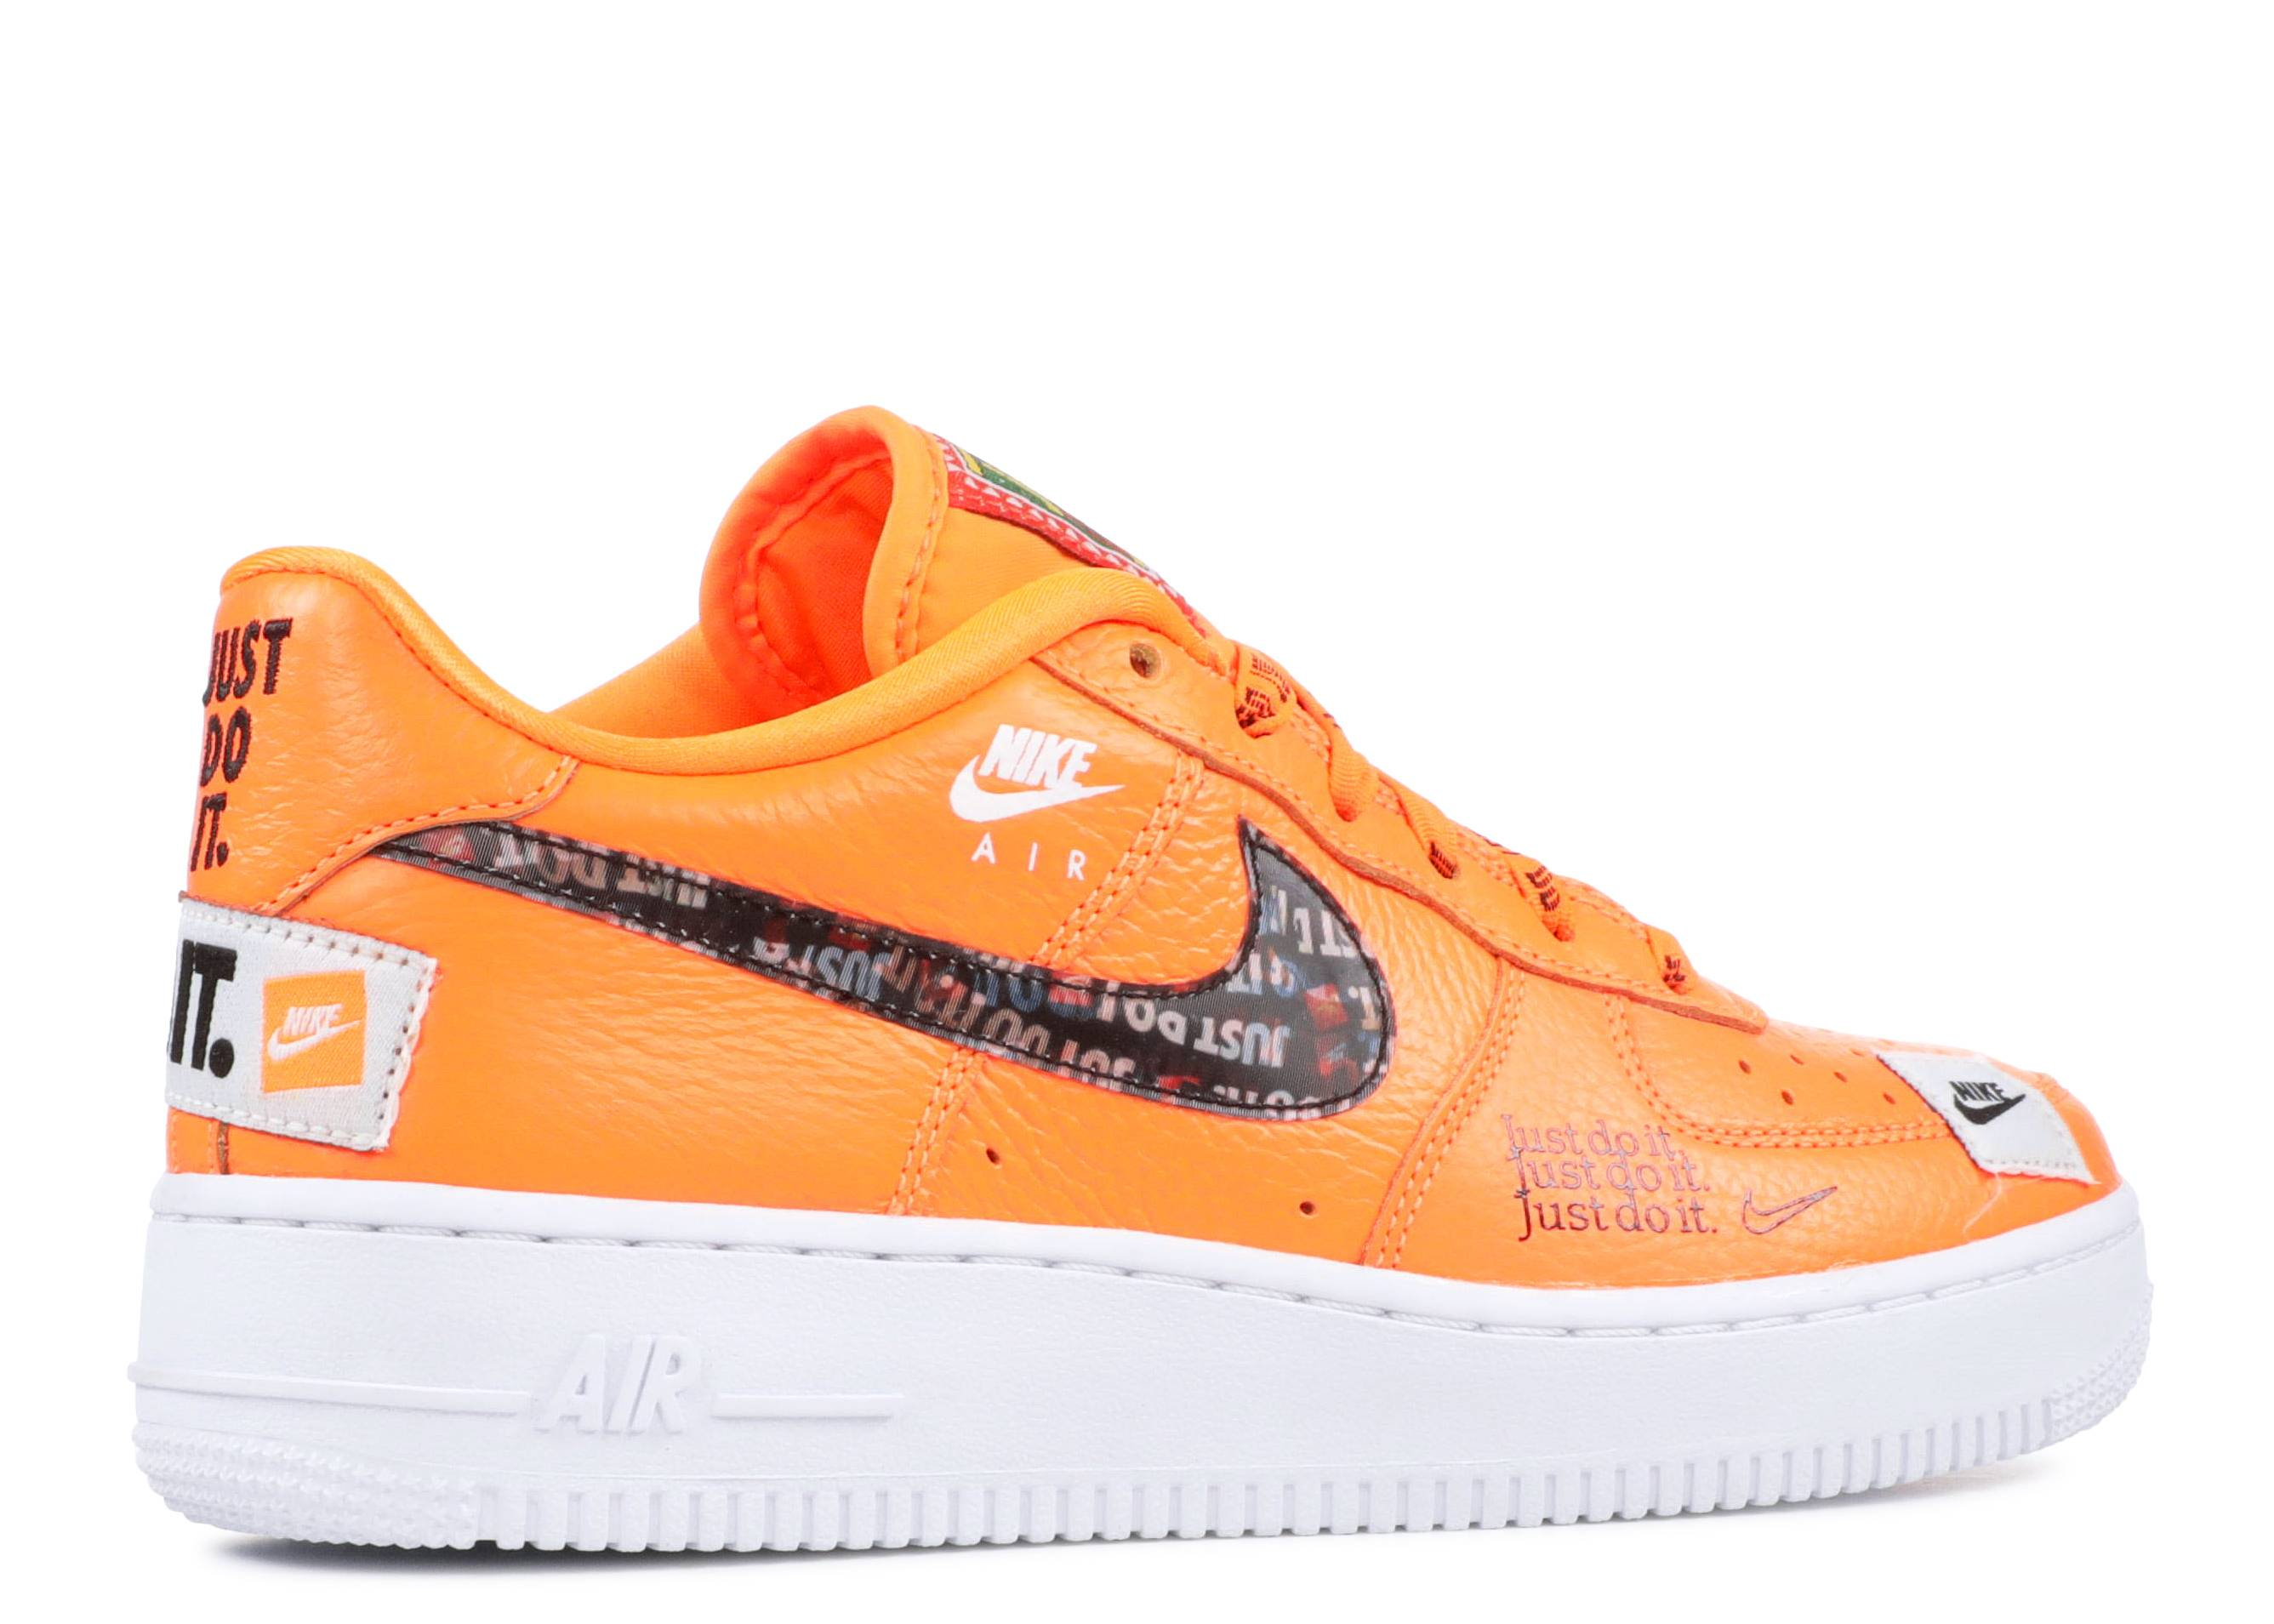 Air Force 1 JDI PRM (GS) Just Do It Nike AO3977 800